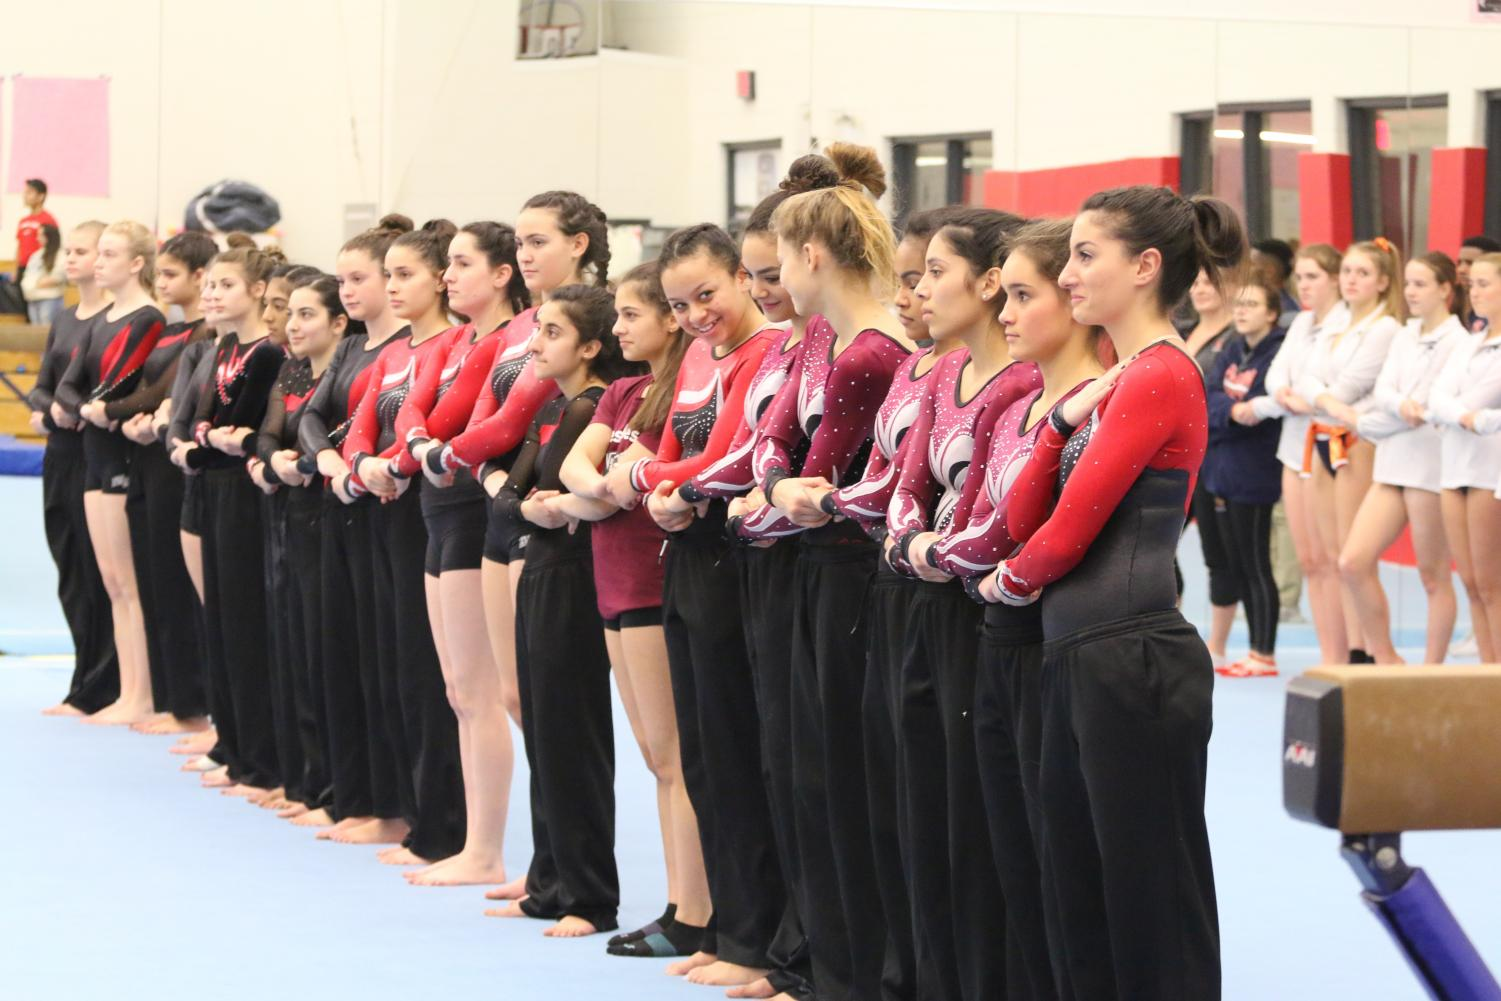 The varsity gymnastics team lines up for the National Anthem.